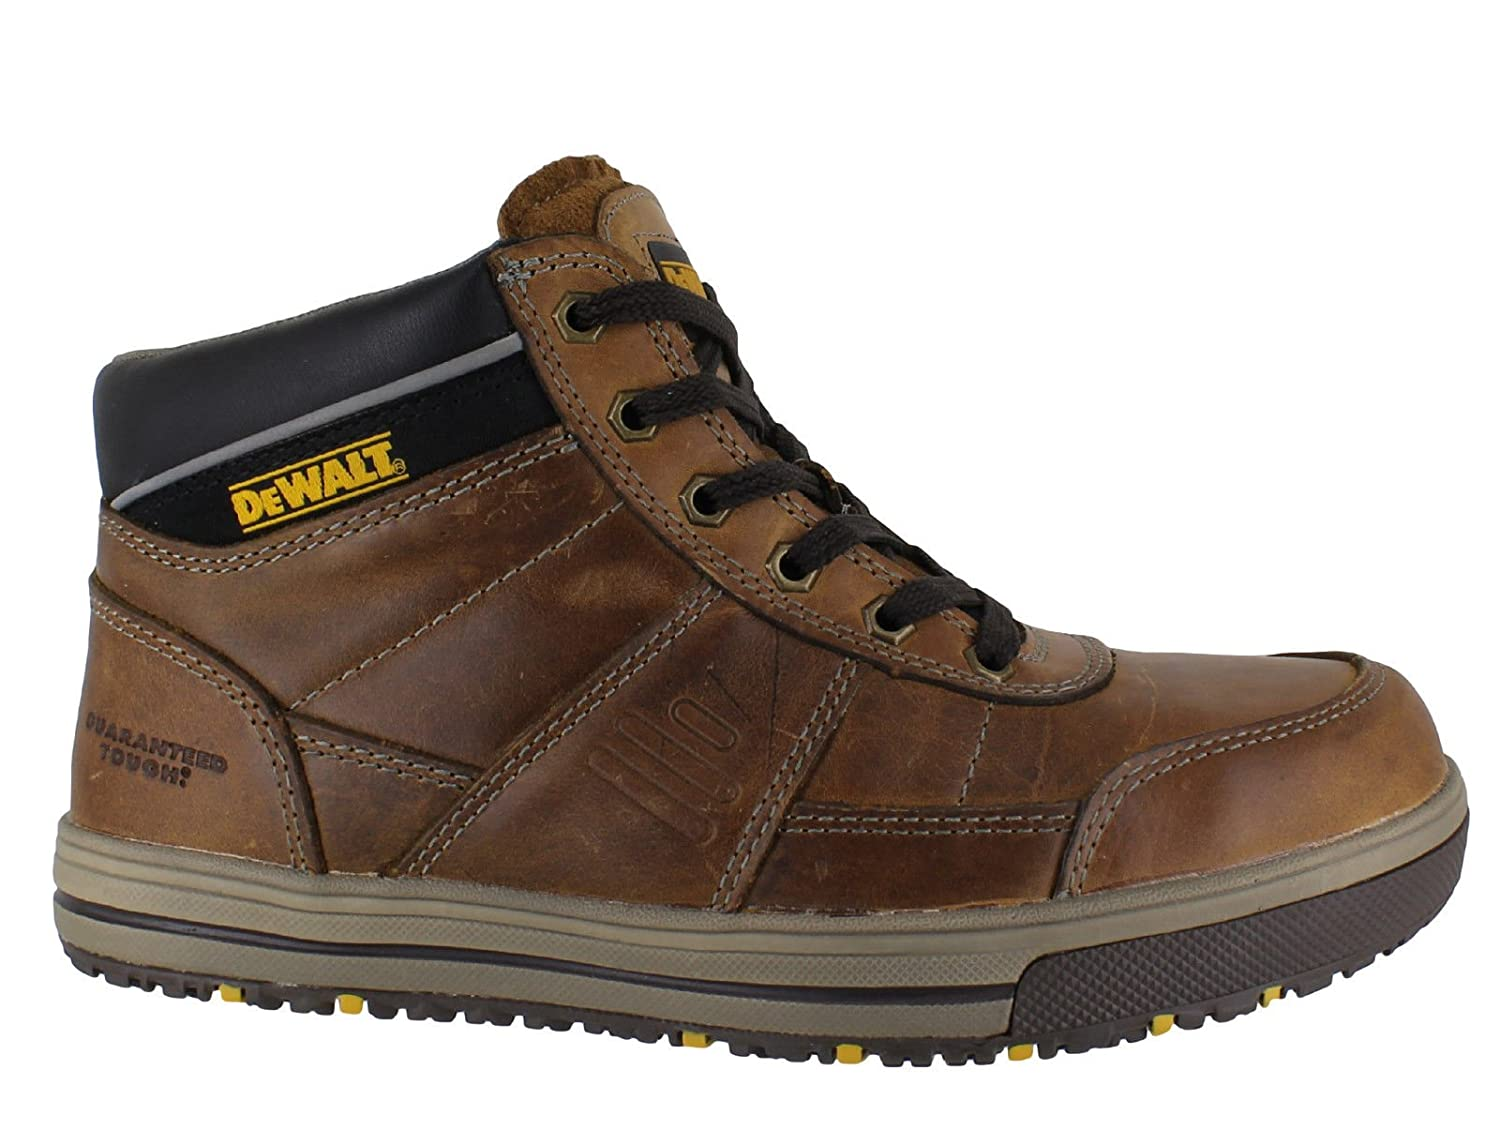 807f1336082d DEWALT Camden Mens Leather SB Steel Toe Lace up Work Boots Beige   Amazon.co.uk  Shoes   Bags